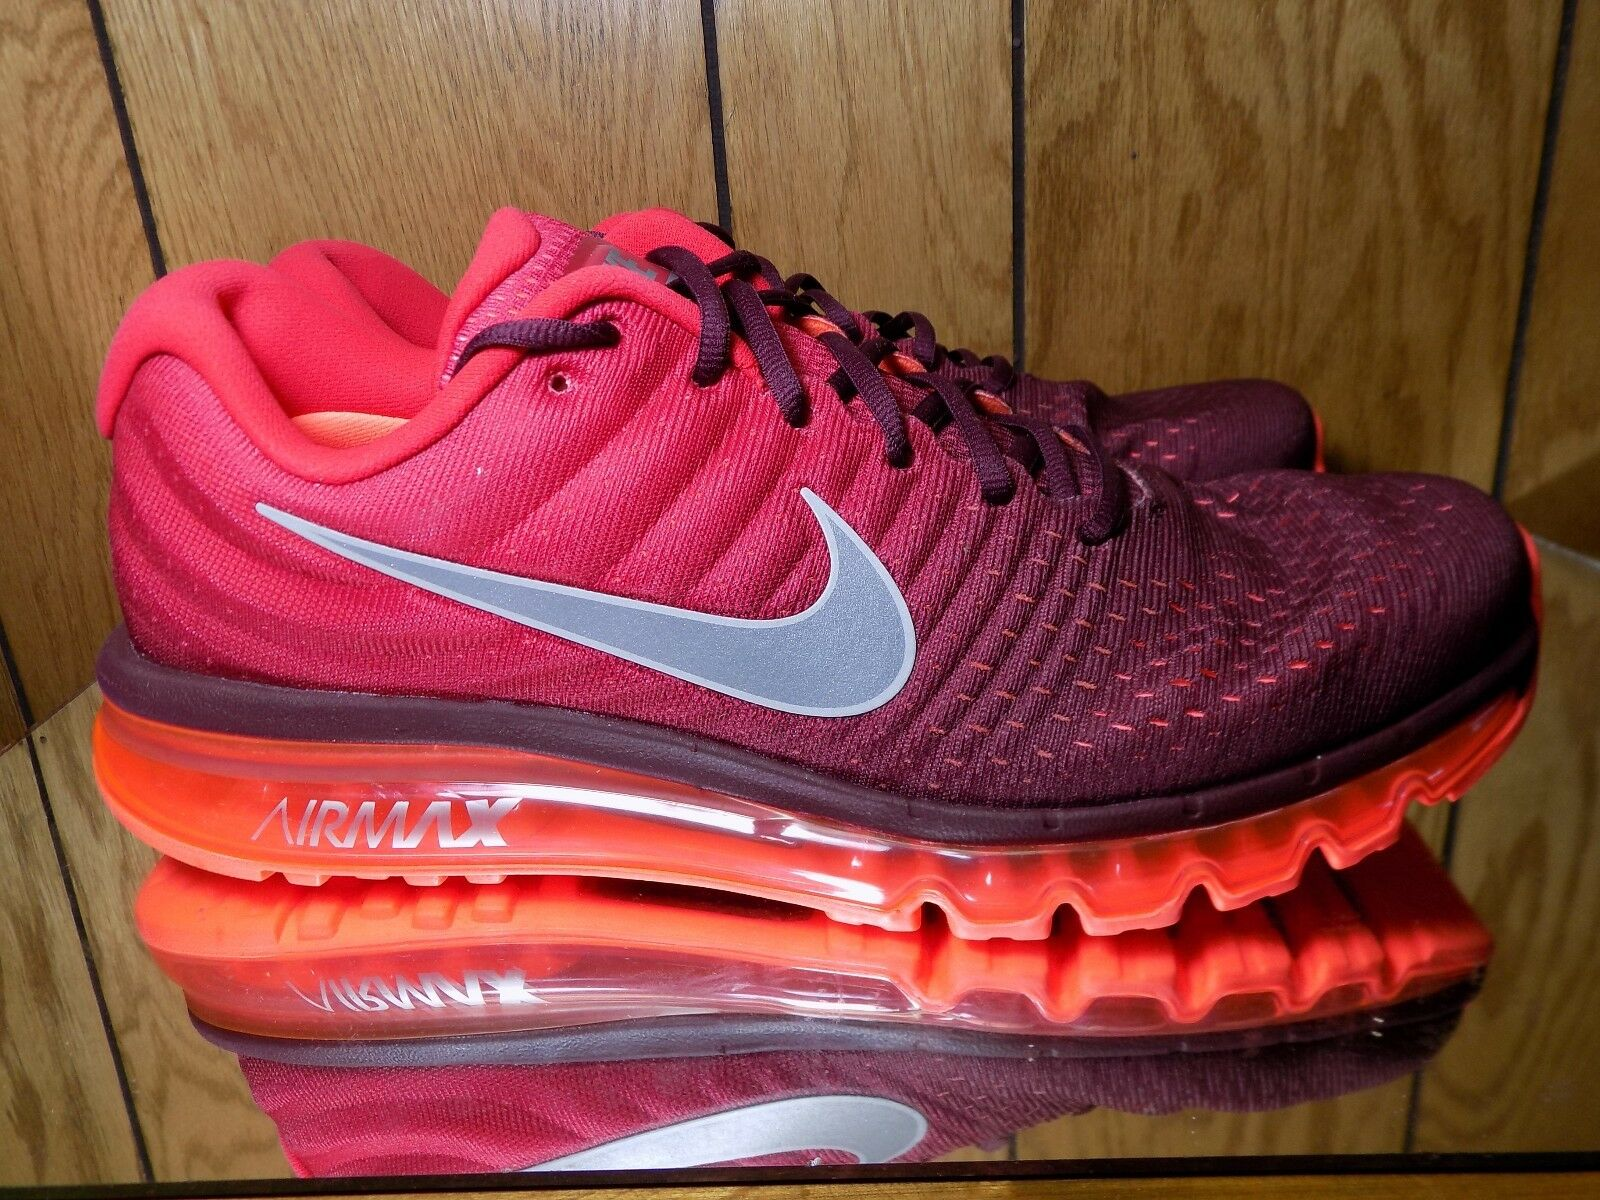 NIKE AIR MAX 2018 NIGHT MAROON-GYM RED Price reduction Great discount